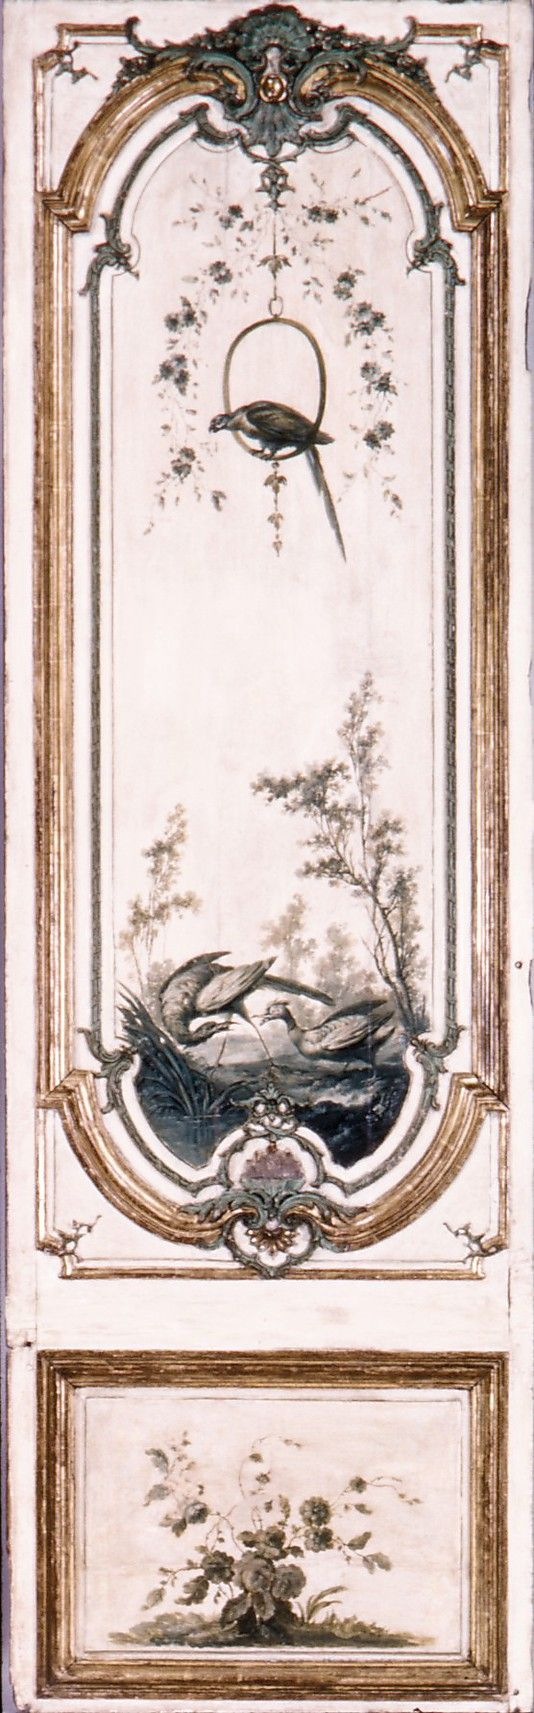 77 best decorative paint images on pinterest painting baroque door panel manner of jean baptiste oudry french paris 16861755 dailygadgetfo Gallery